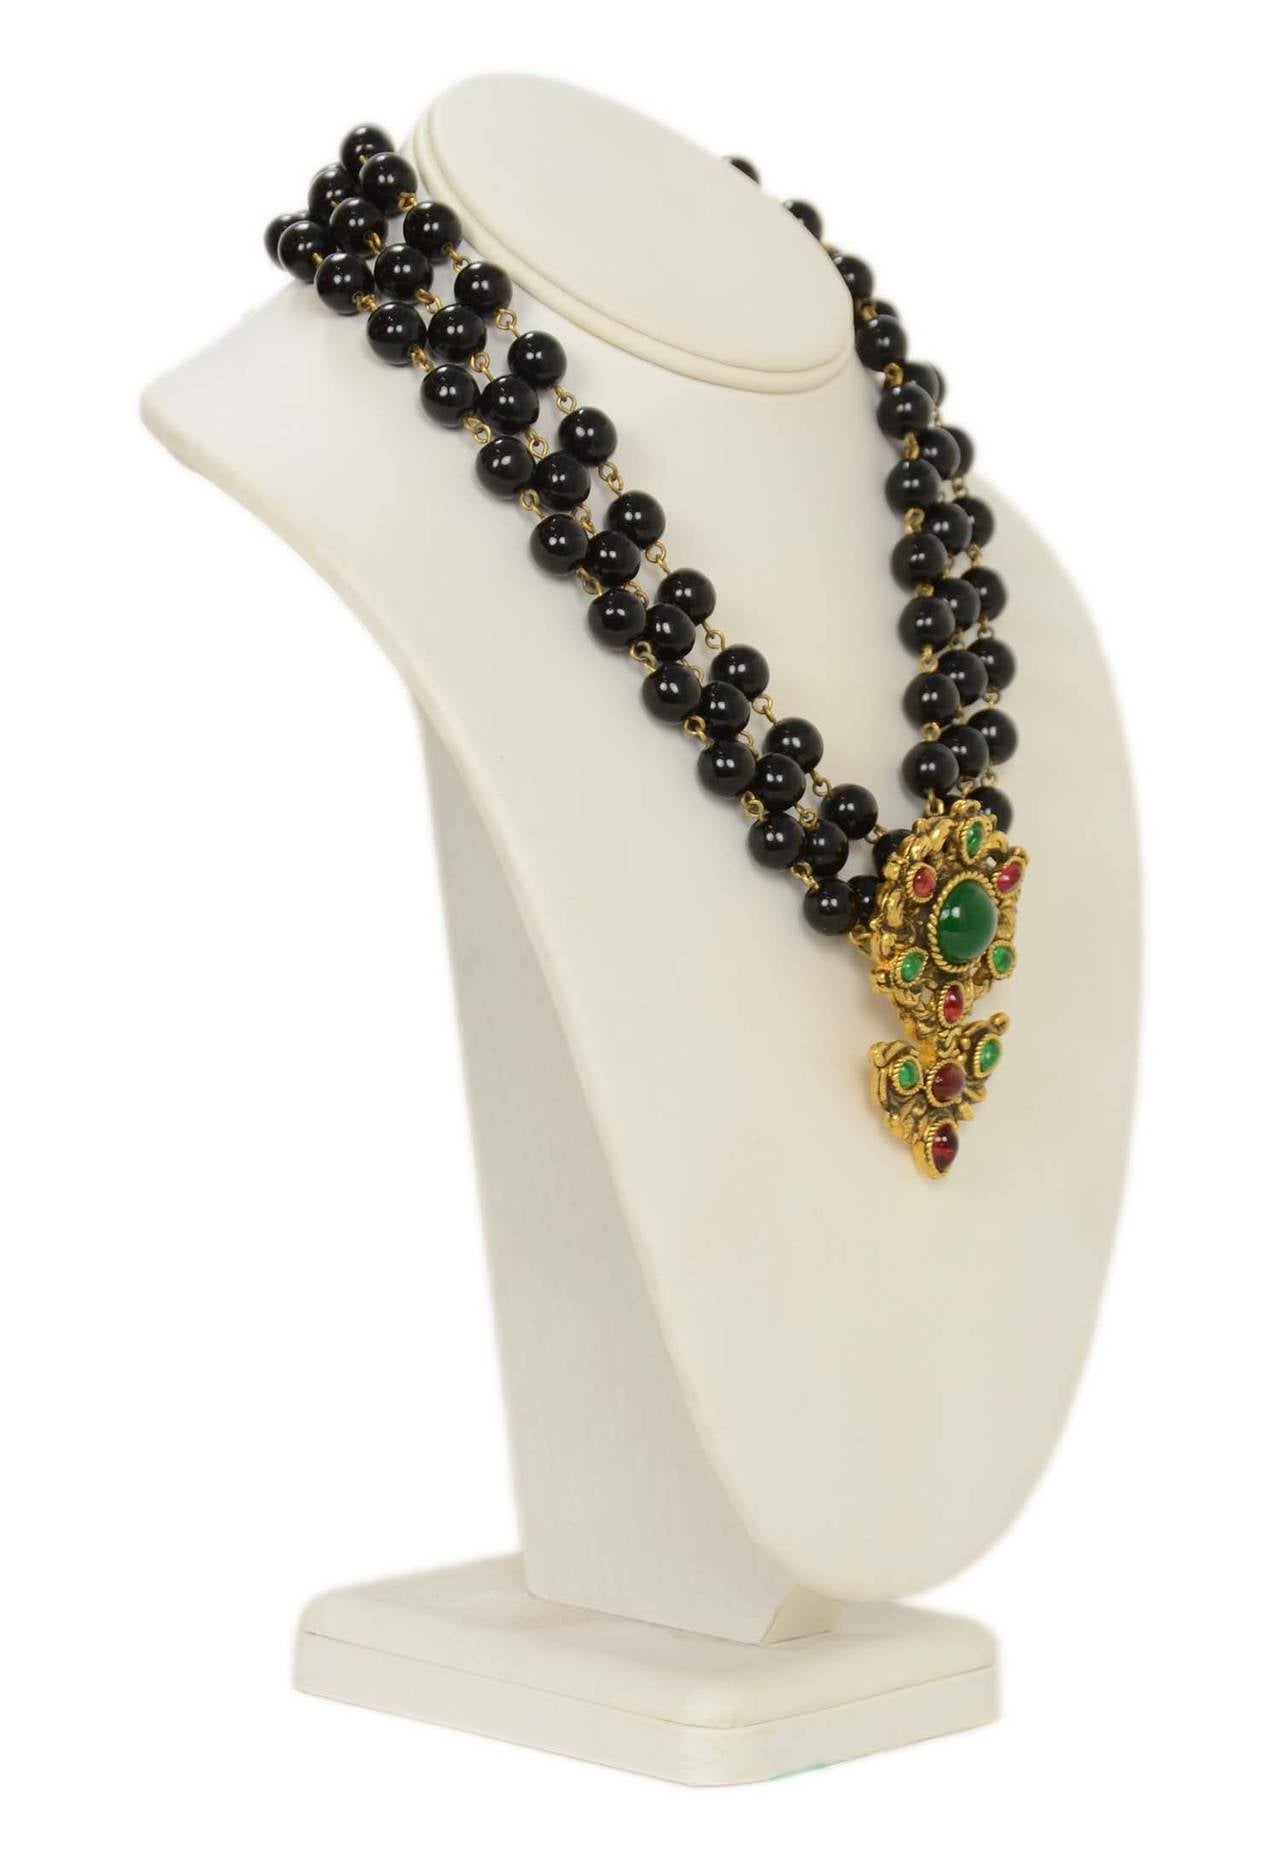 CHANEL Vintage 1985 Black Triple Strand Beaded Necklace w/ Flower Pendant 2